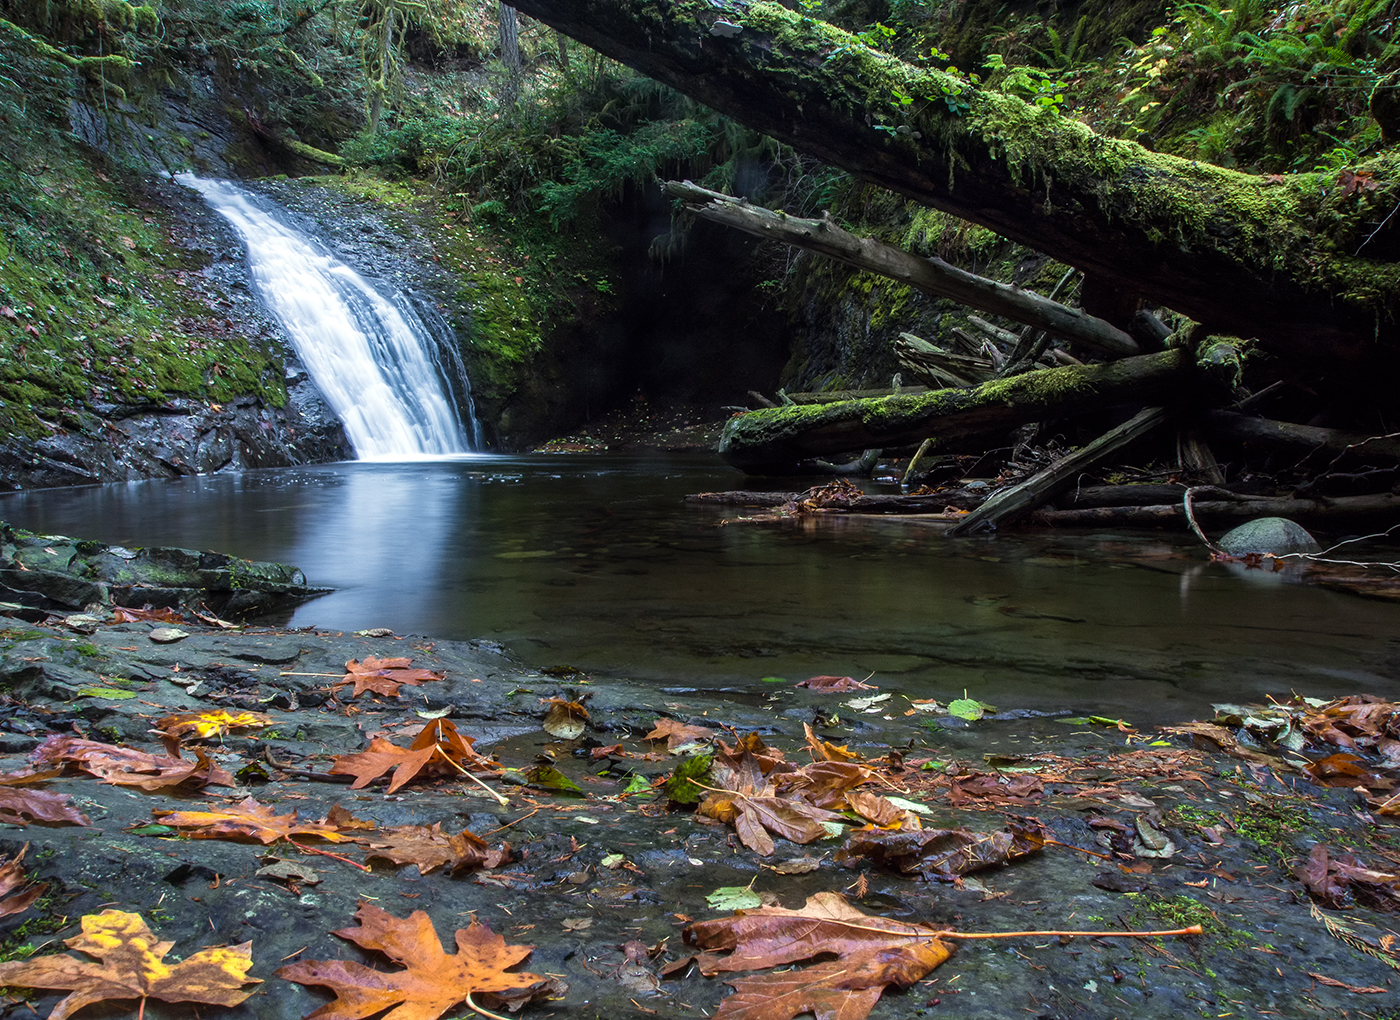 One of the lower falls in Benson Creek Park